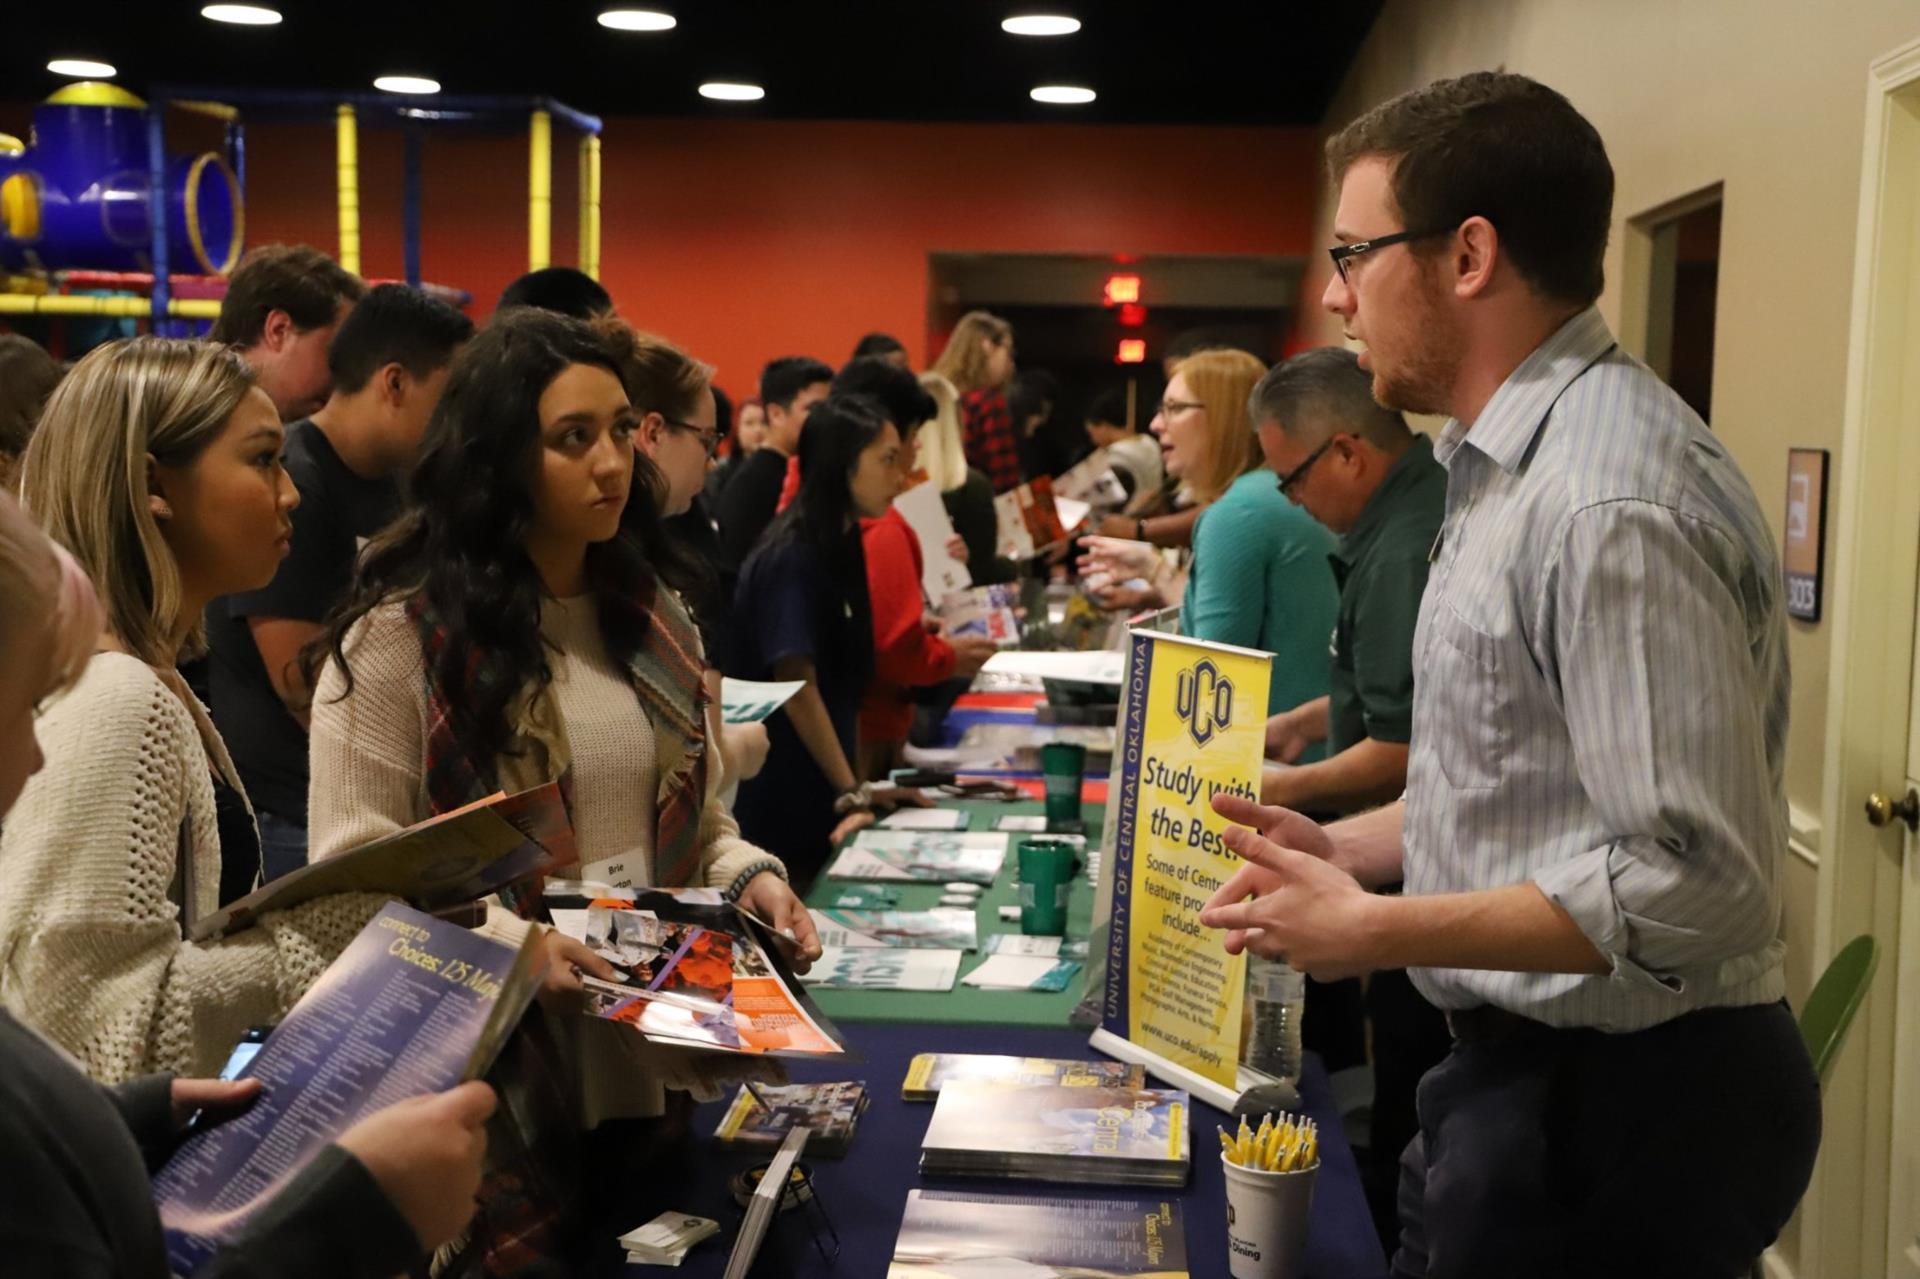 Representatives from UCO and other colleges, universities, and trade schools spoke with students at the college fair.